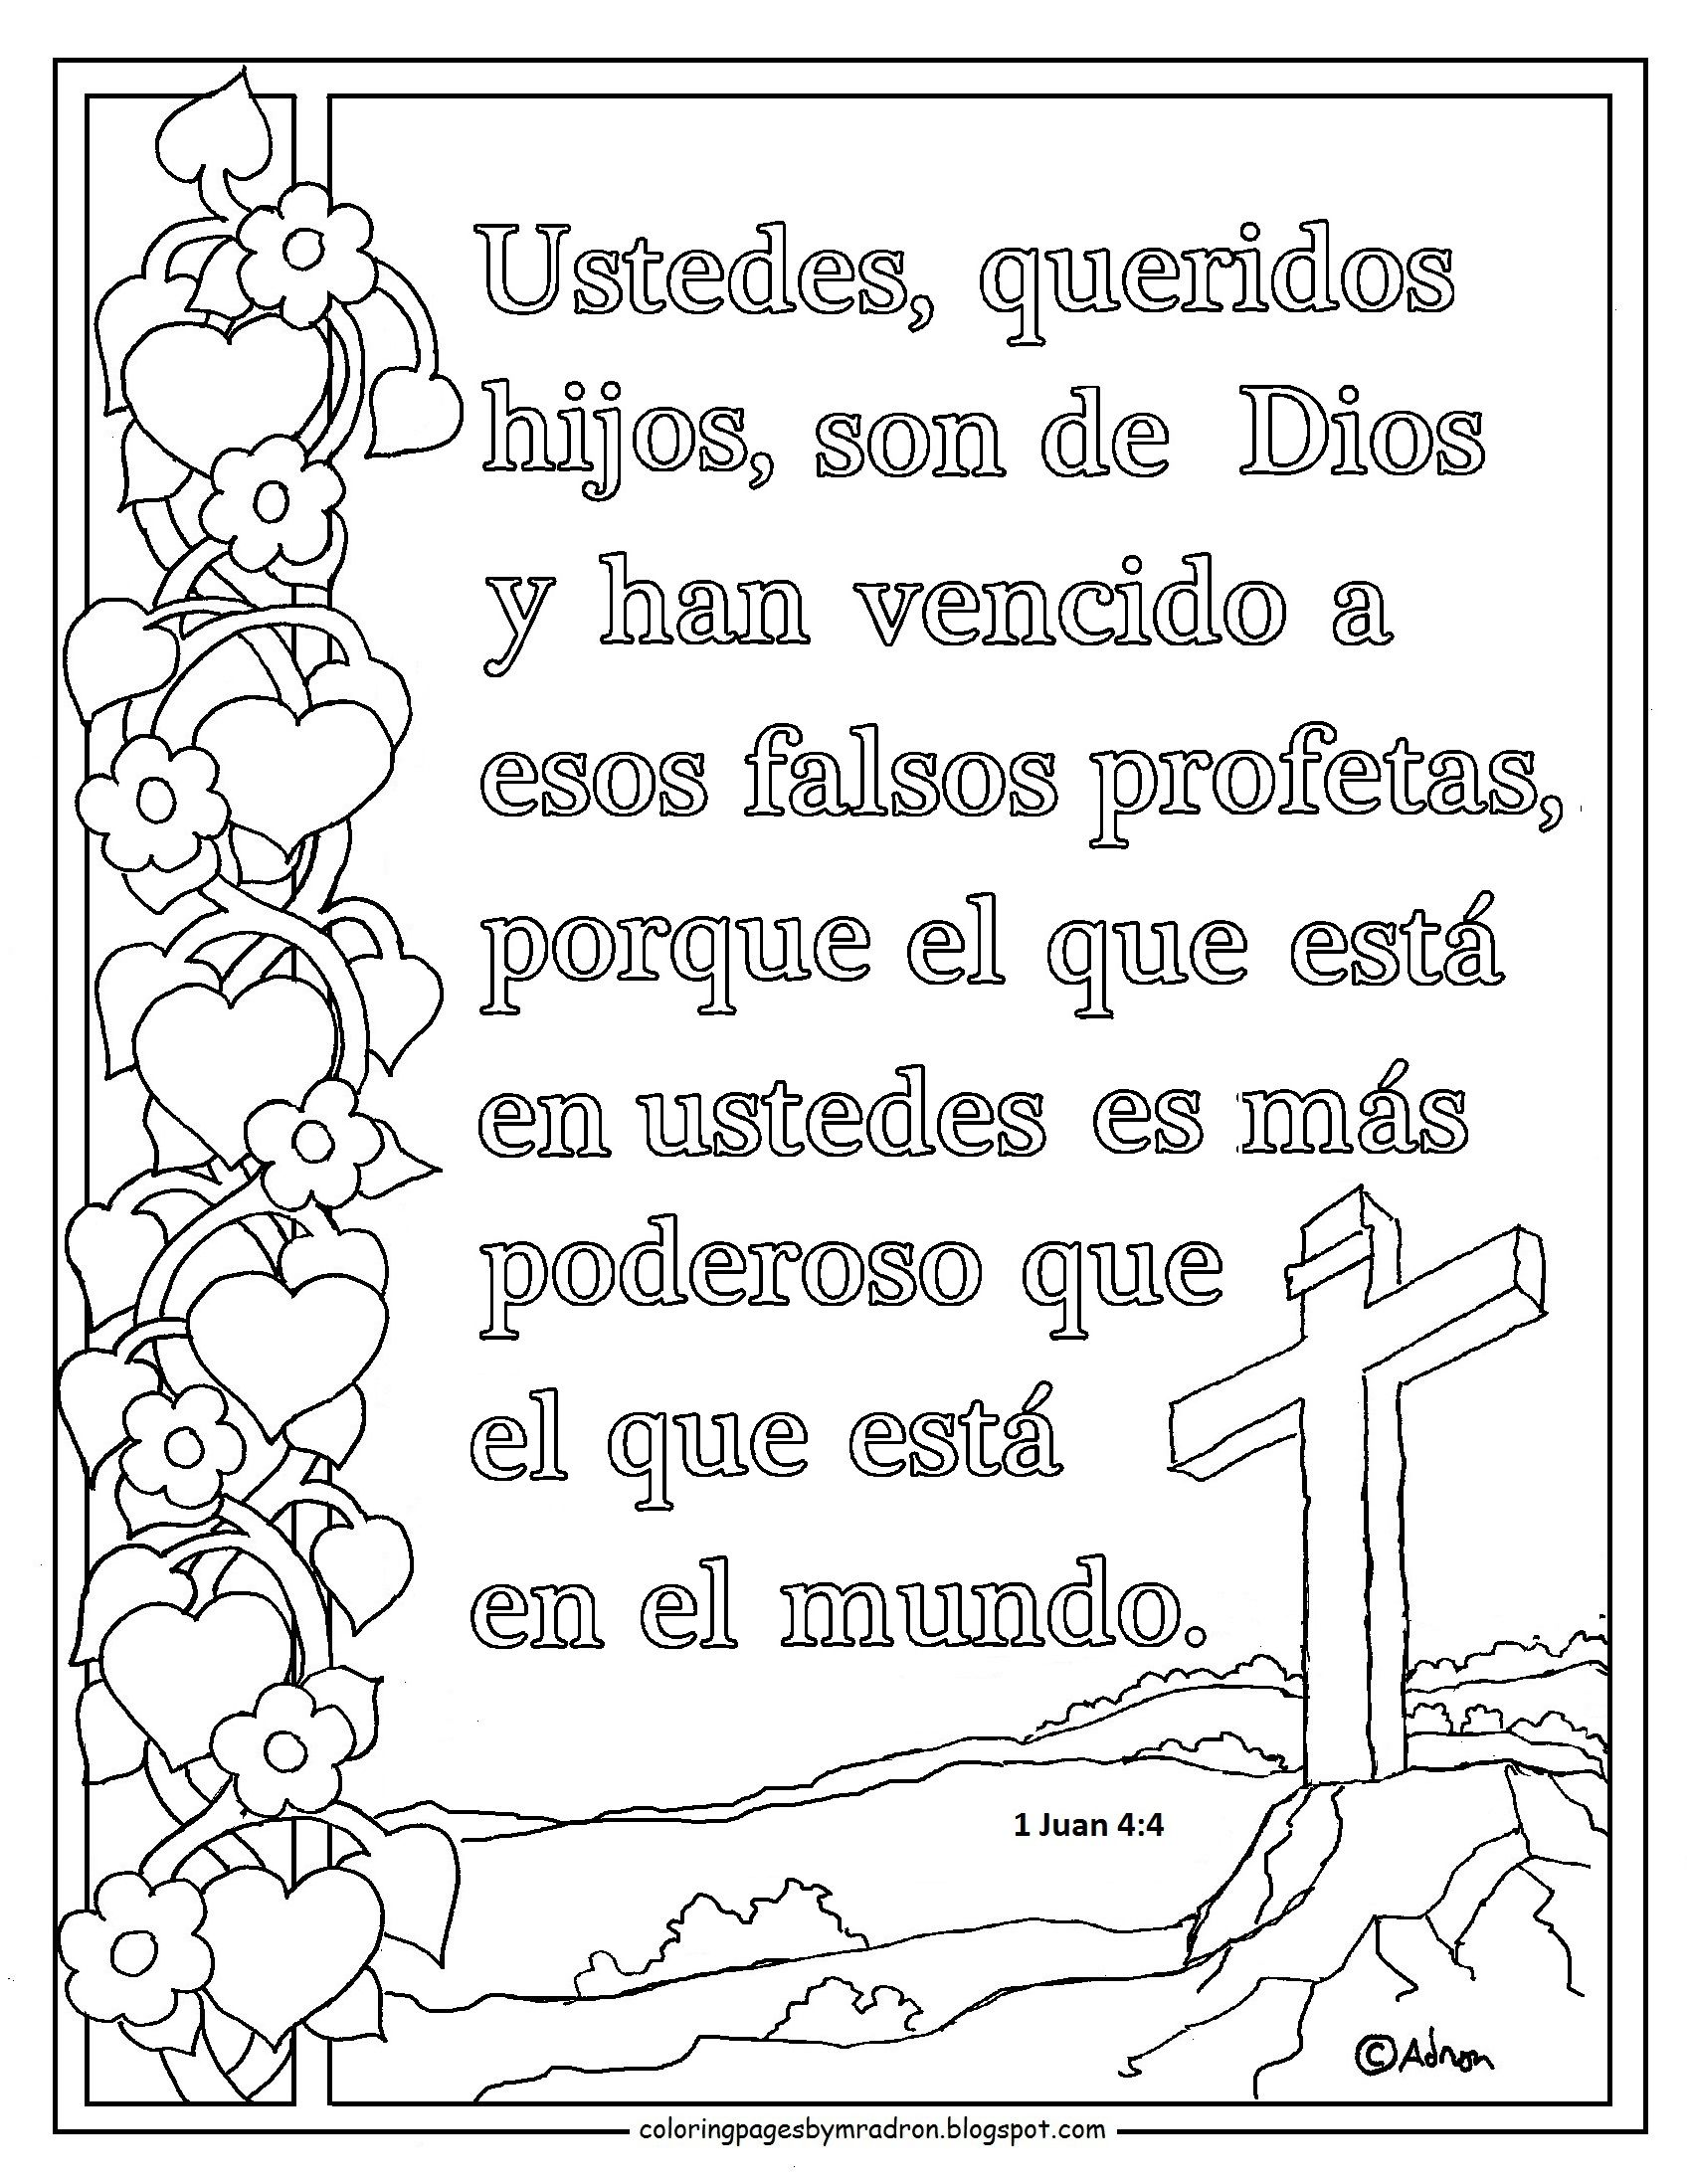 Spanish language print and color page for 1 Juan 4:4 Bible ...